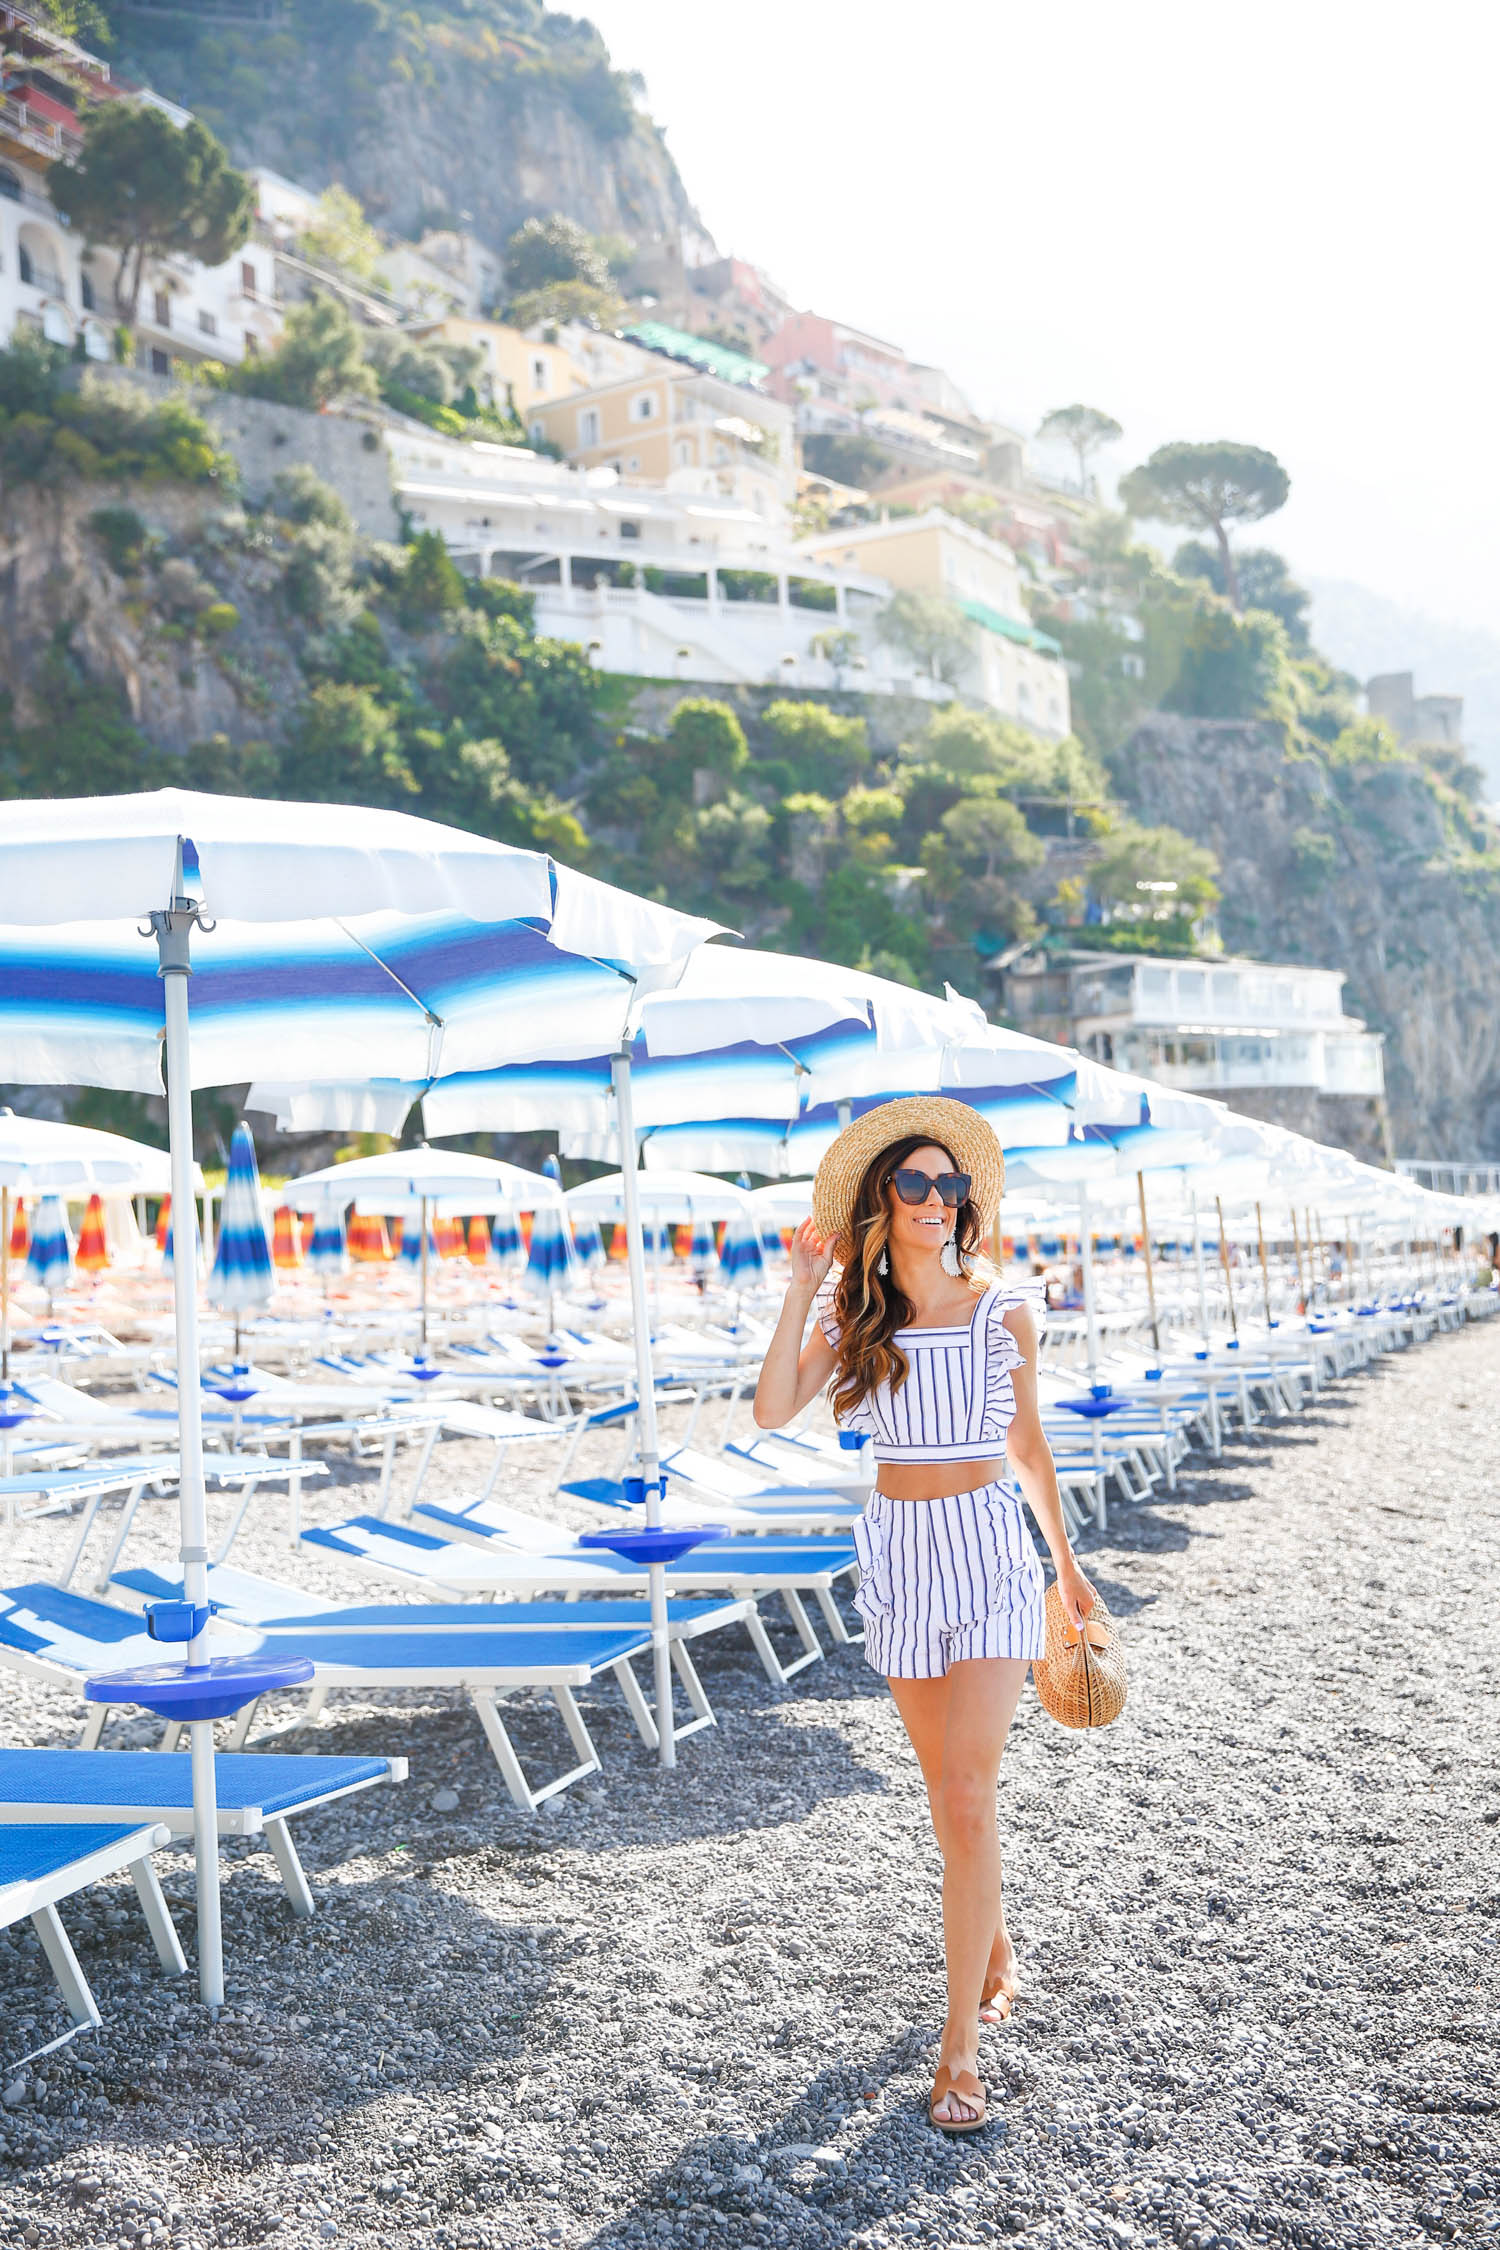 blue beach umbrellas, positano, amalfi coast, what to wear on the 4th of july, summer outfit inspiration, summer outfit idea, italy